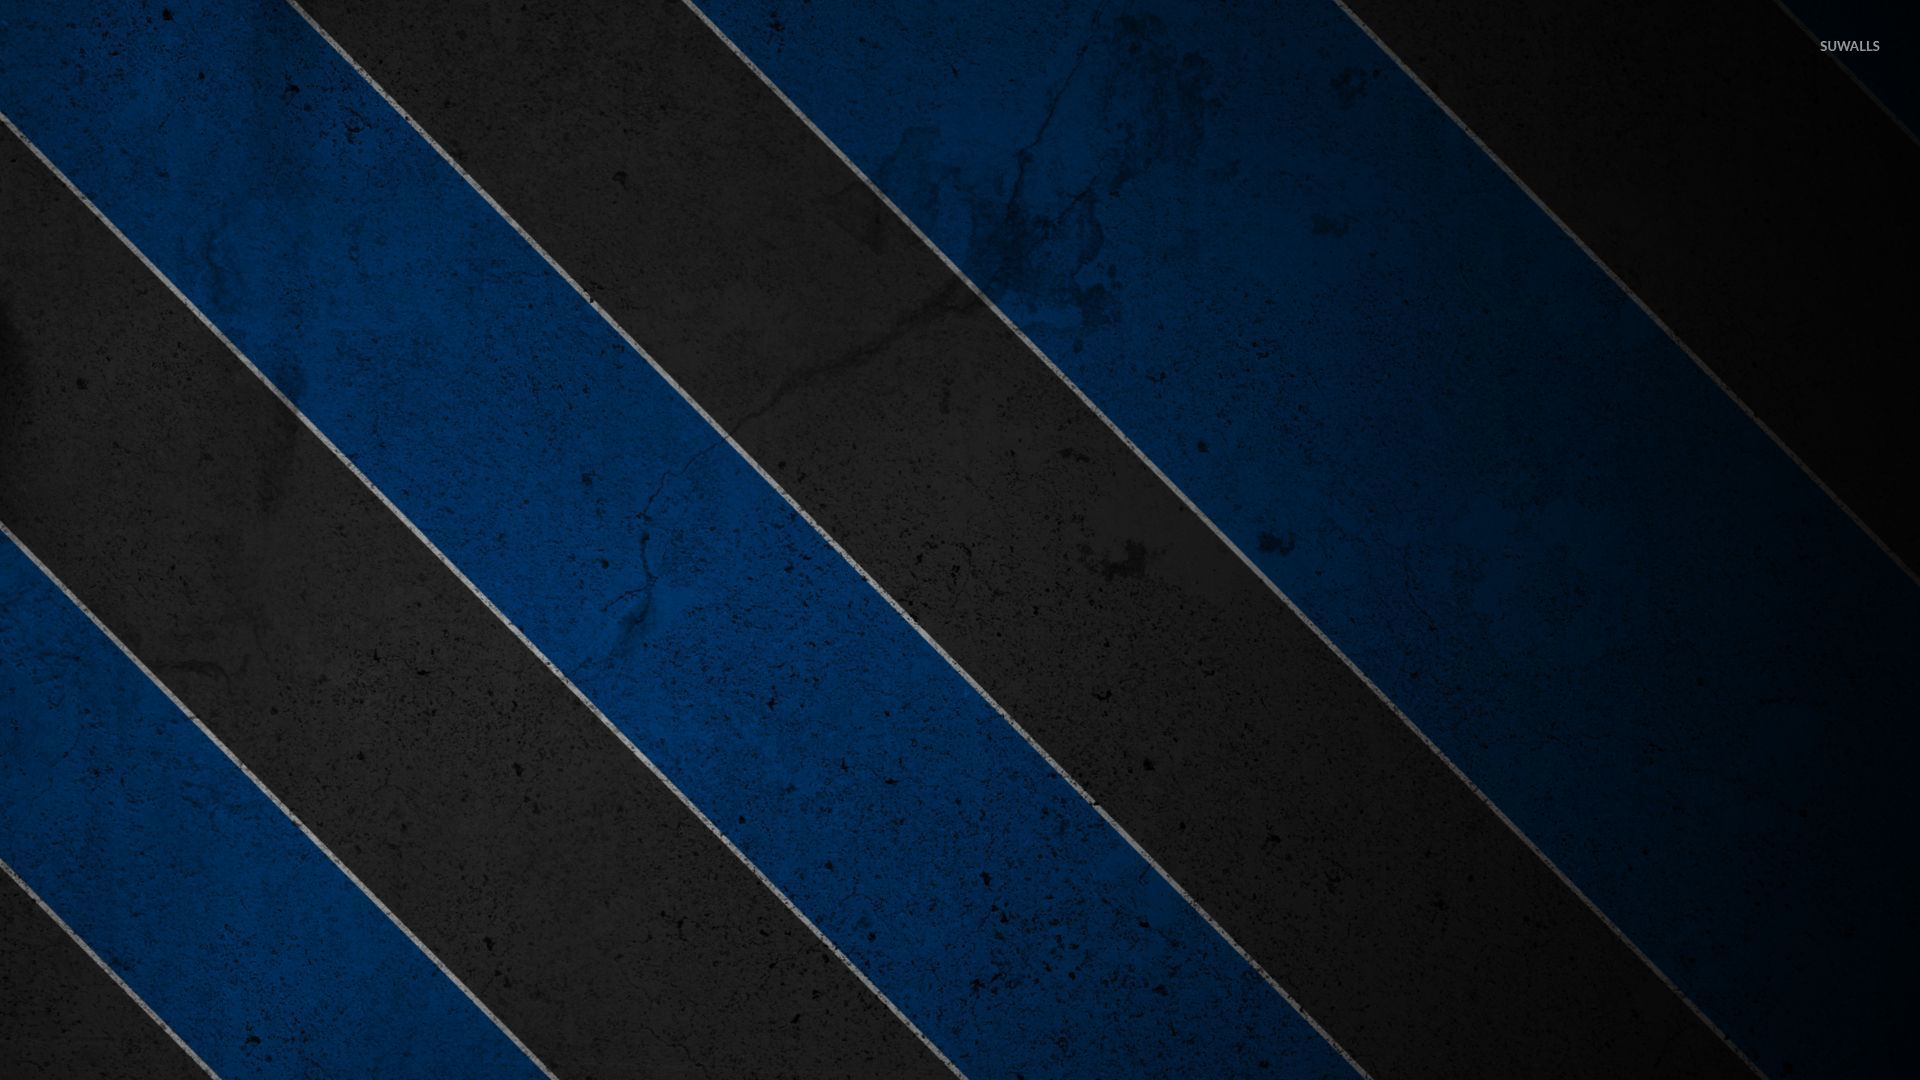 Texturized Black And Blue Stripes Wallpaper Abstract Wallpapers